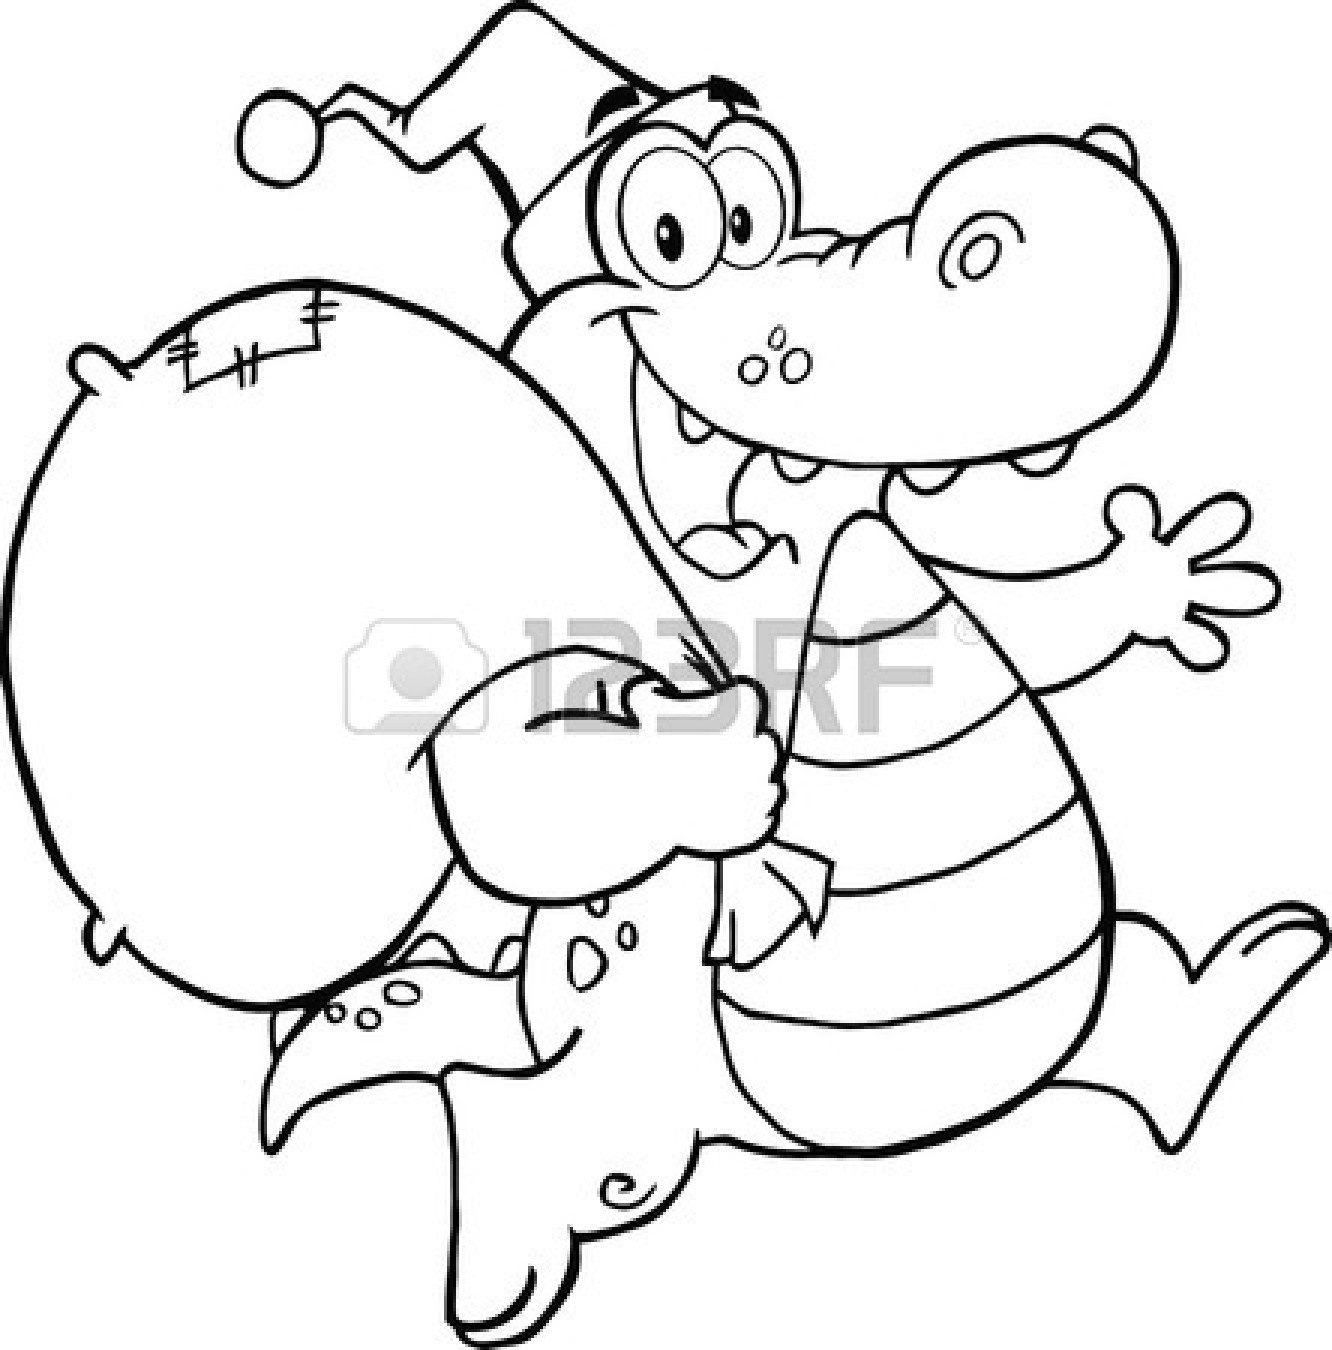 1332x1350 Cute Alligator Clipart Black And White Letters Example